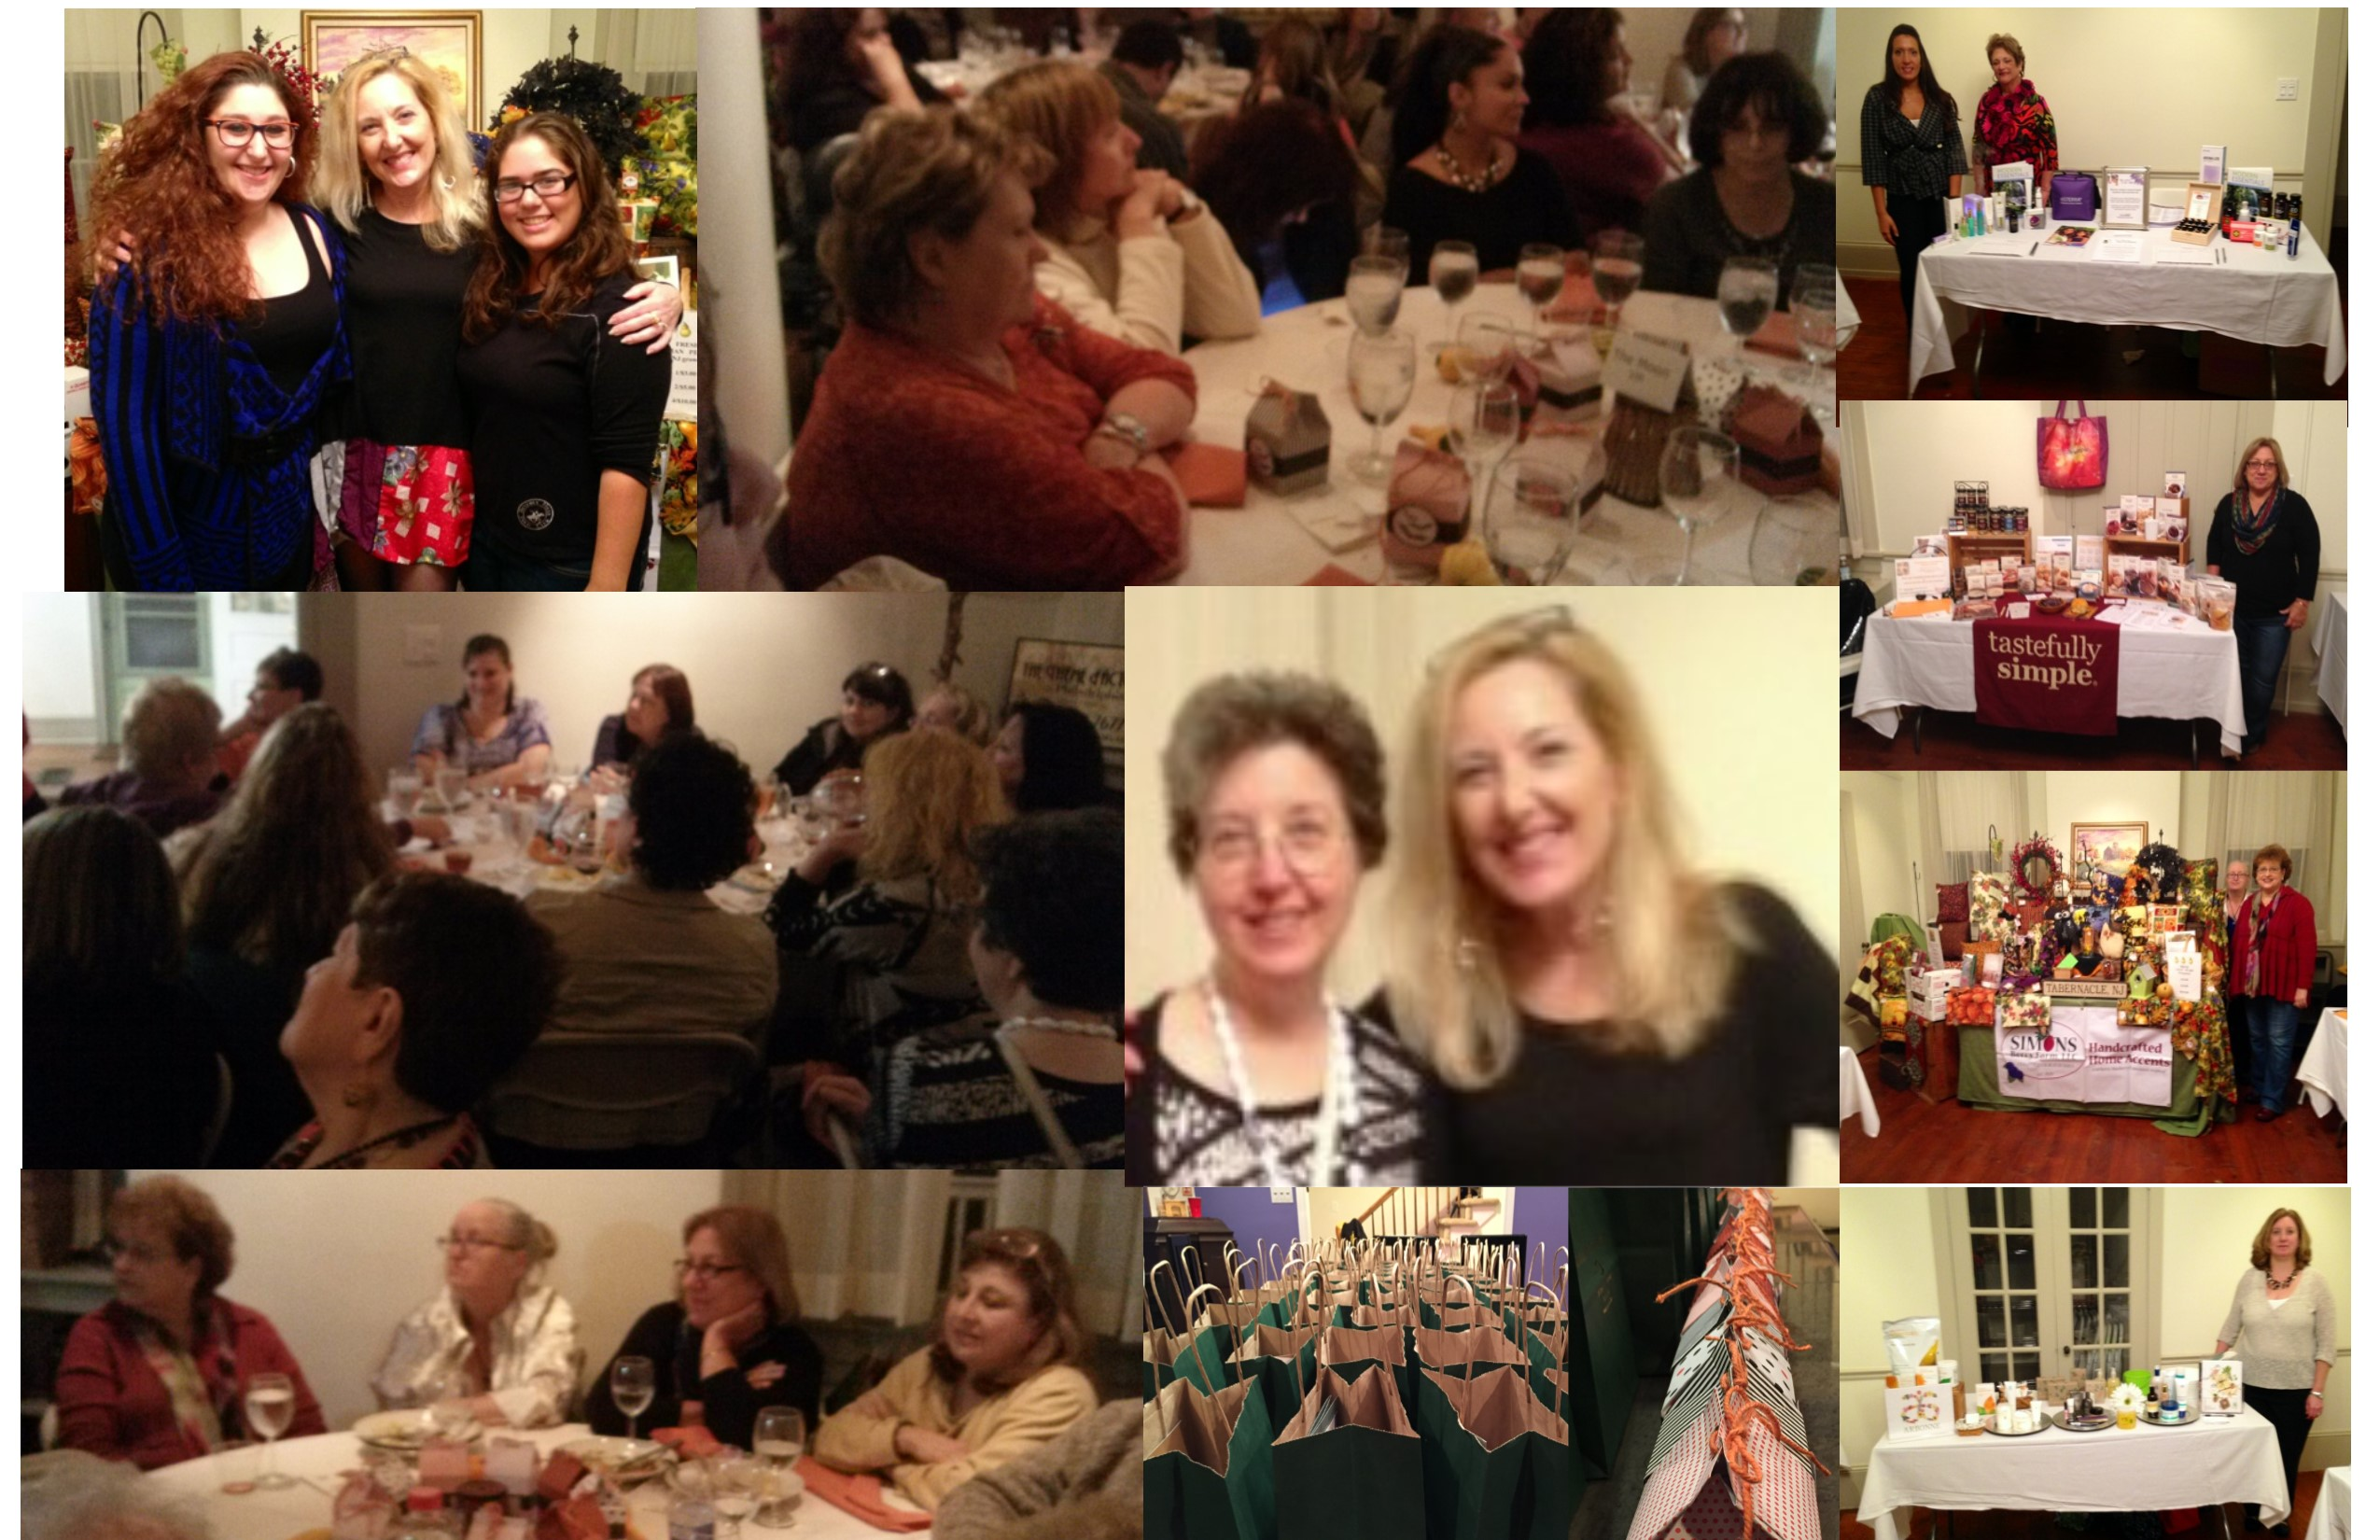 It was a great night for a Psychic Dinner on the Burlington County Farm. And the amazing food was catered by Kuzina by Sofia.